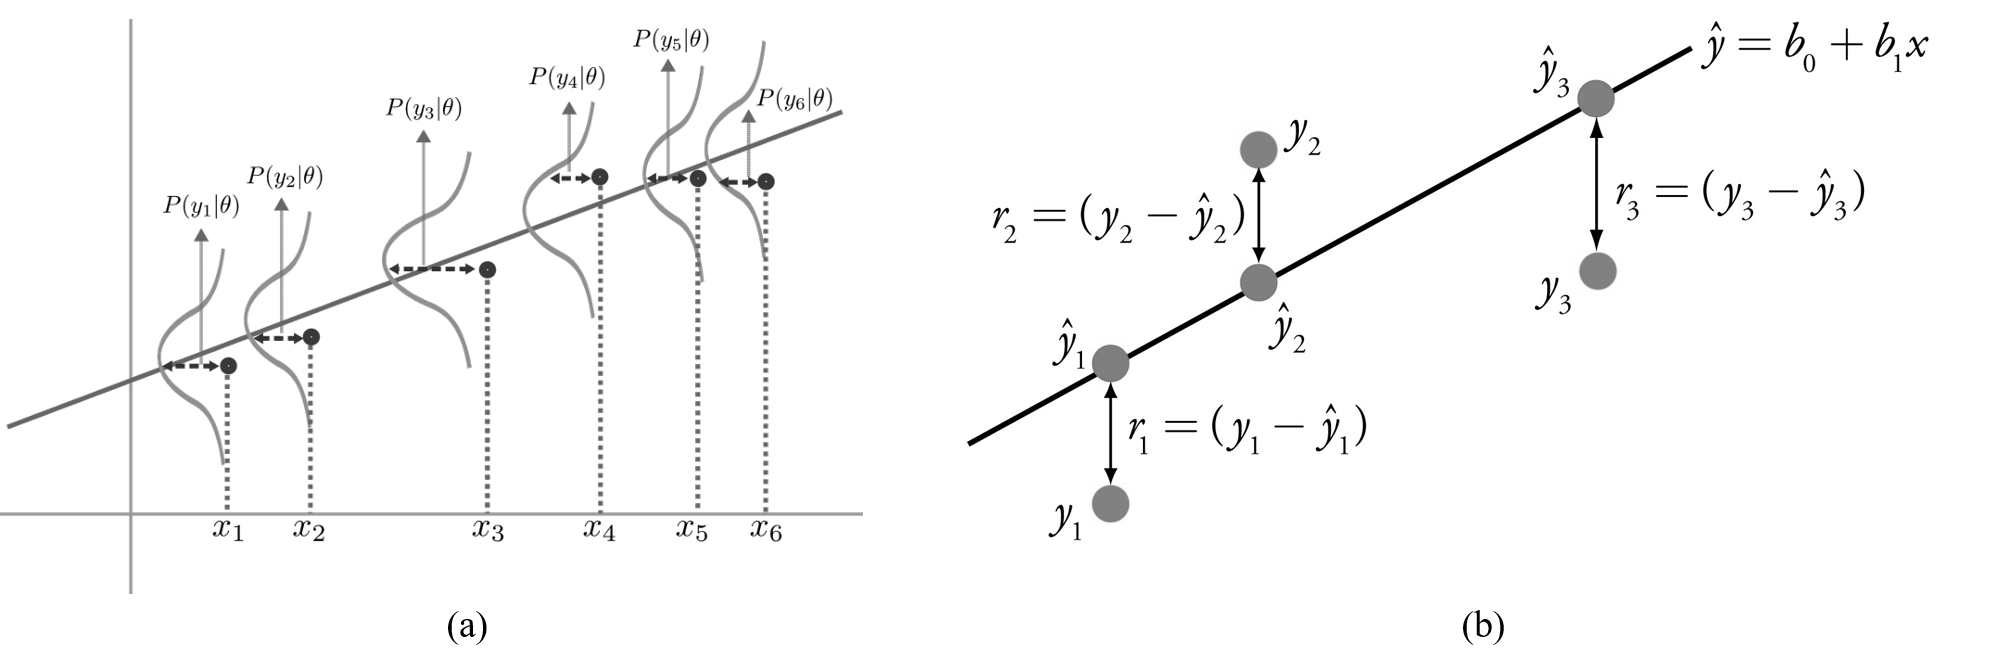 Linear regression perspectives: (a) Statistical model; (b) Function approximation